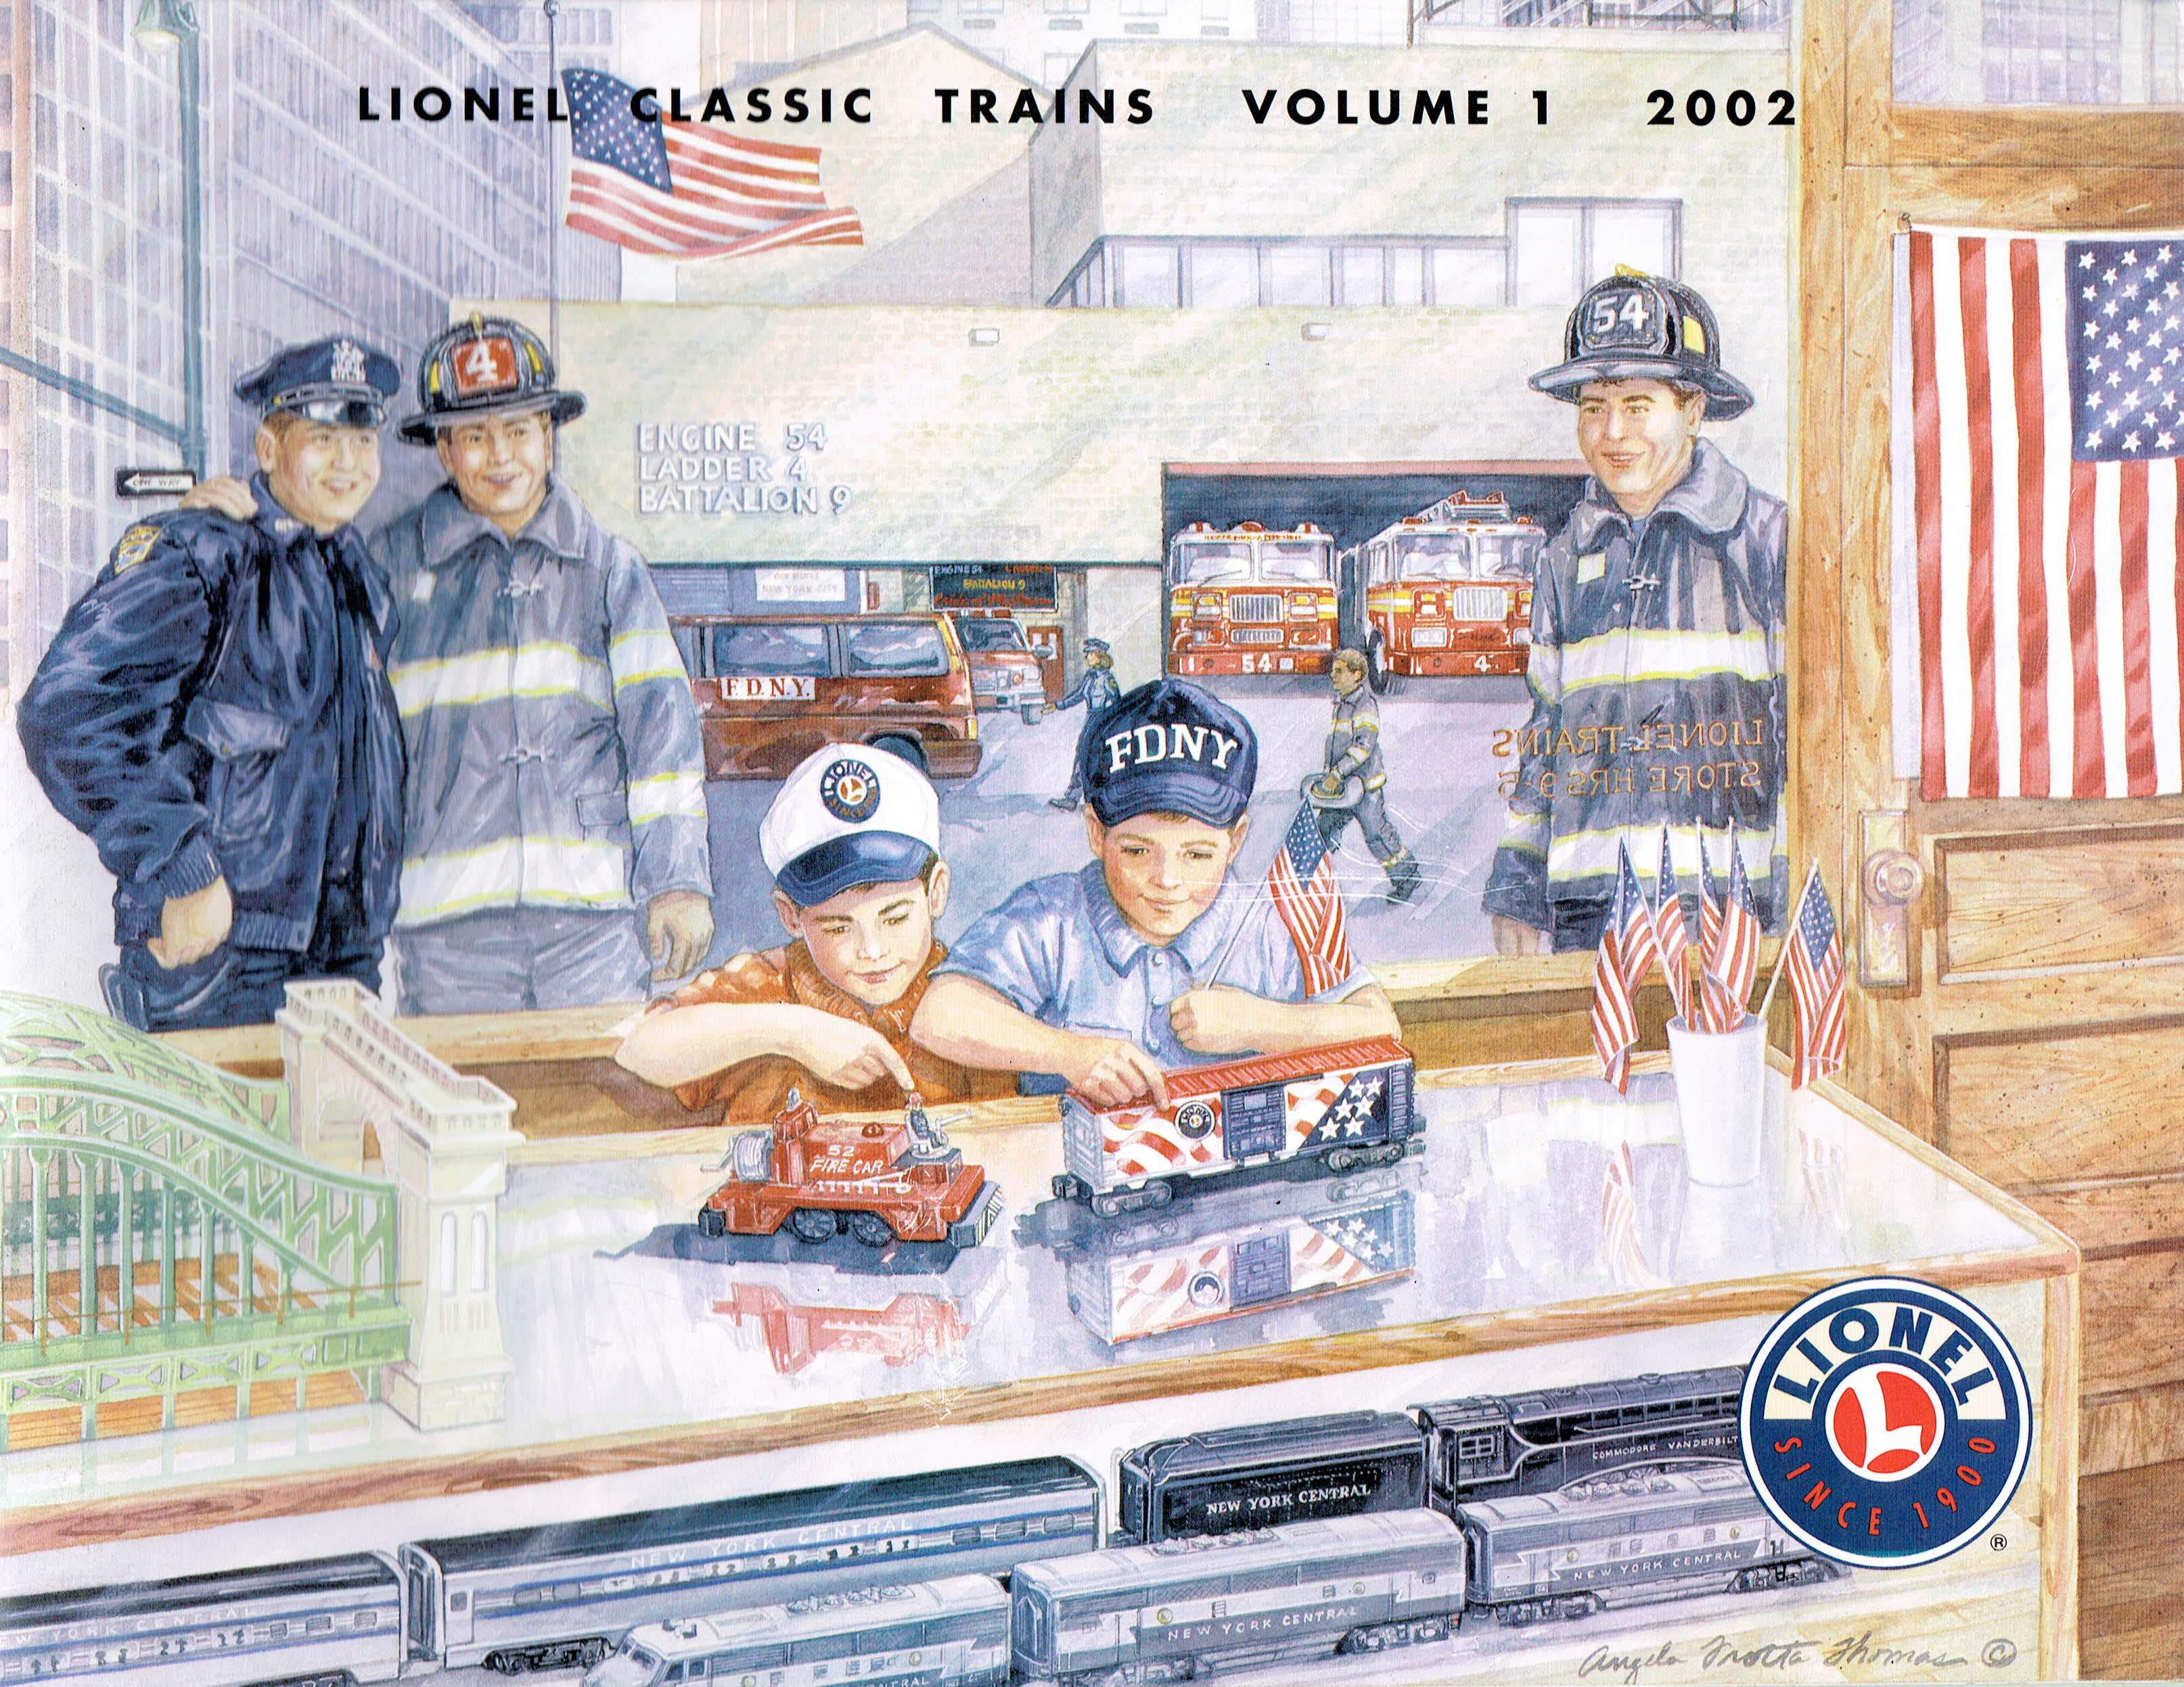 Lionel 2002 Classic Trains Volume 1 Catalog image